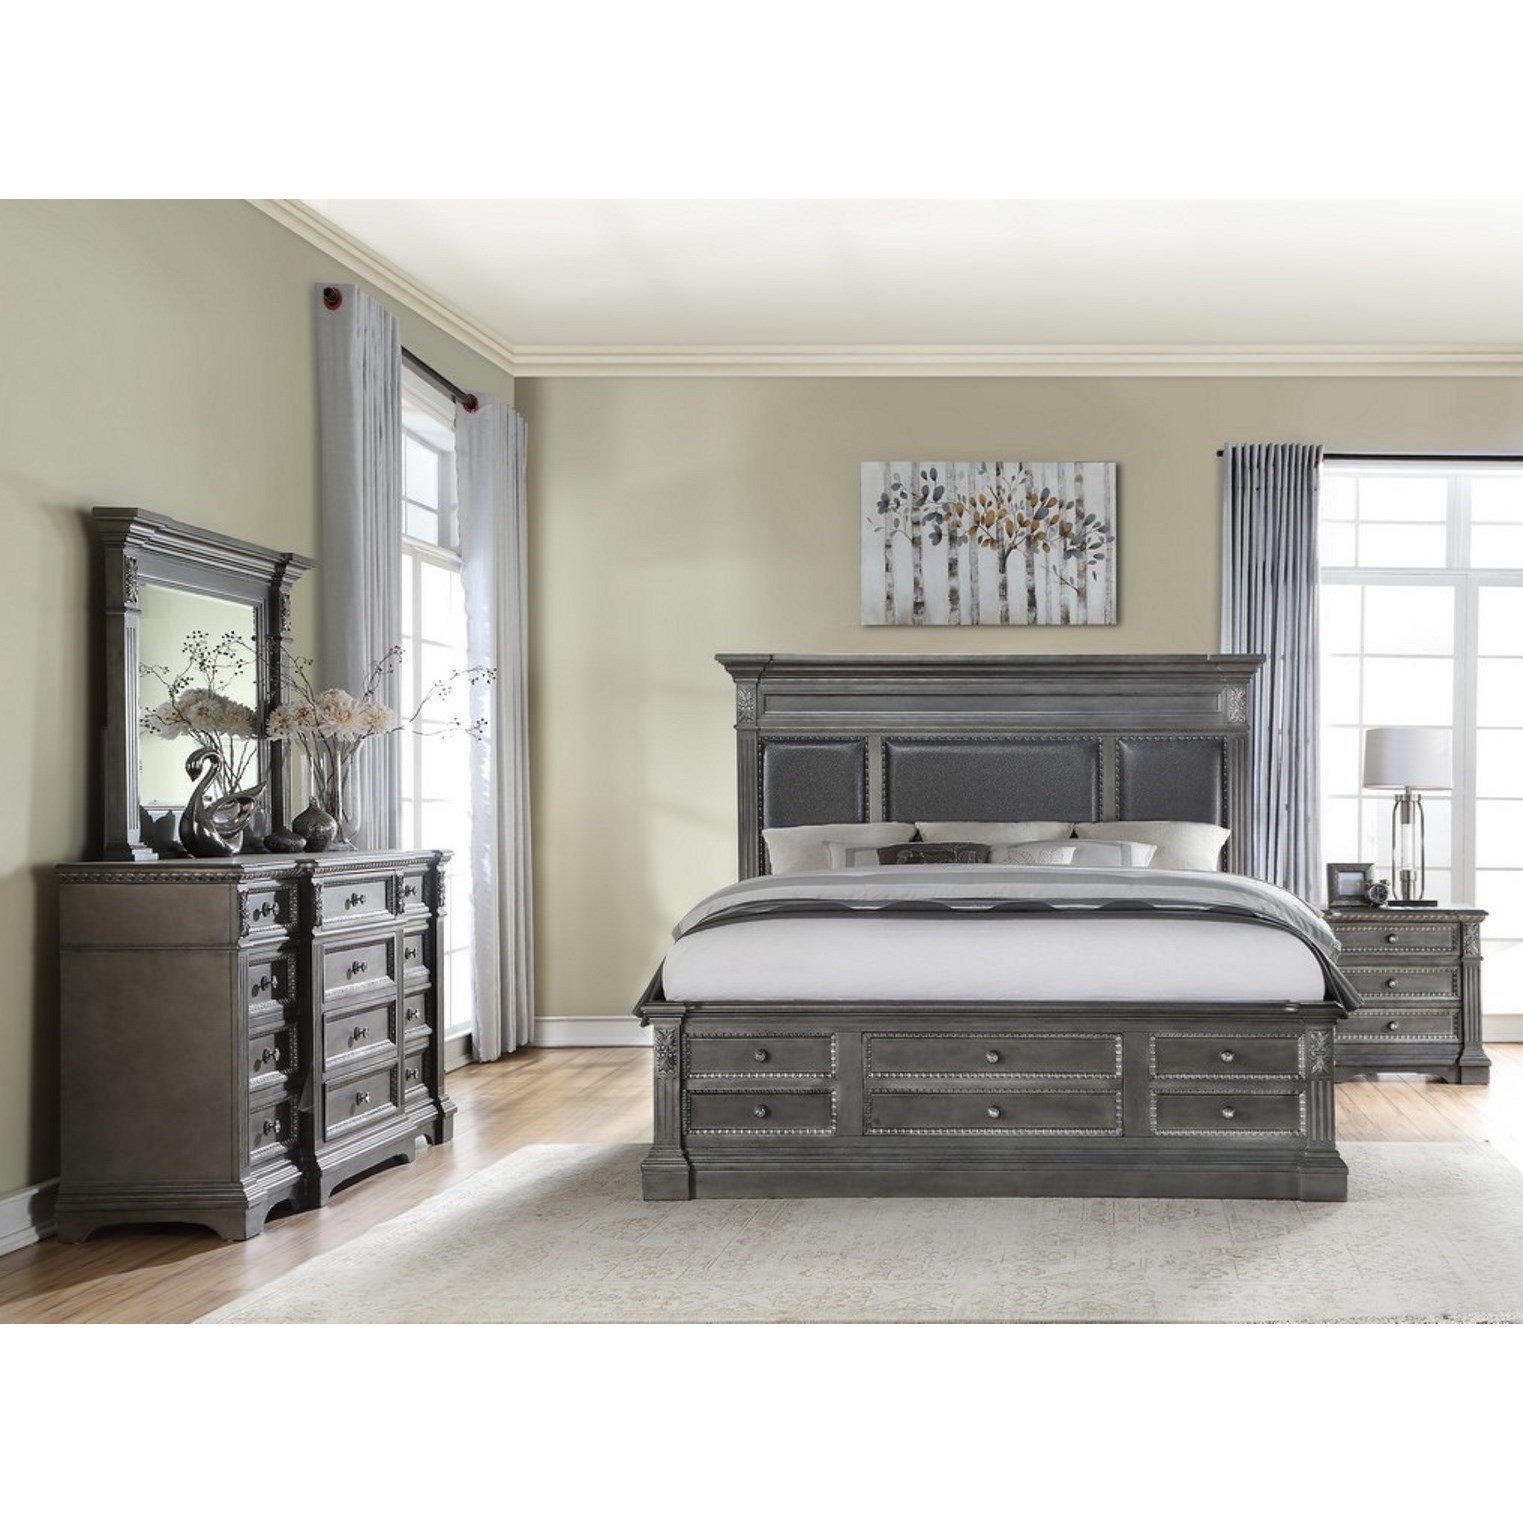 Marseille King Bedroom Group by Global Furniture at Nassau Furniture and Mattress